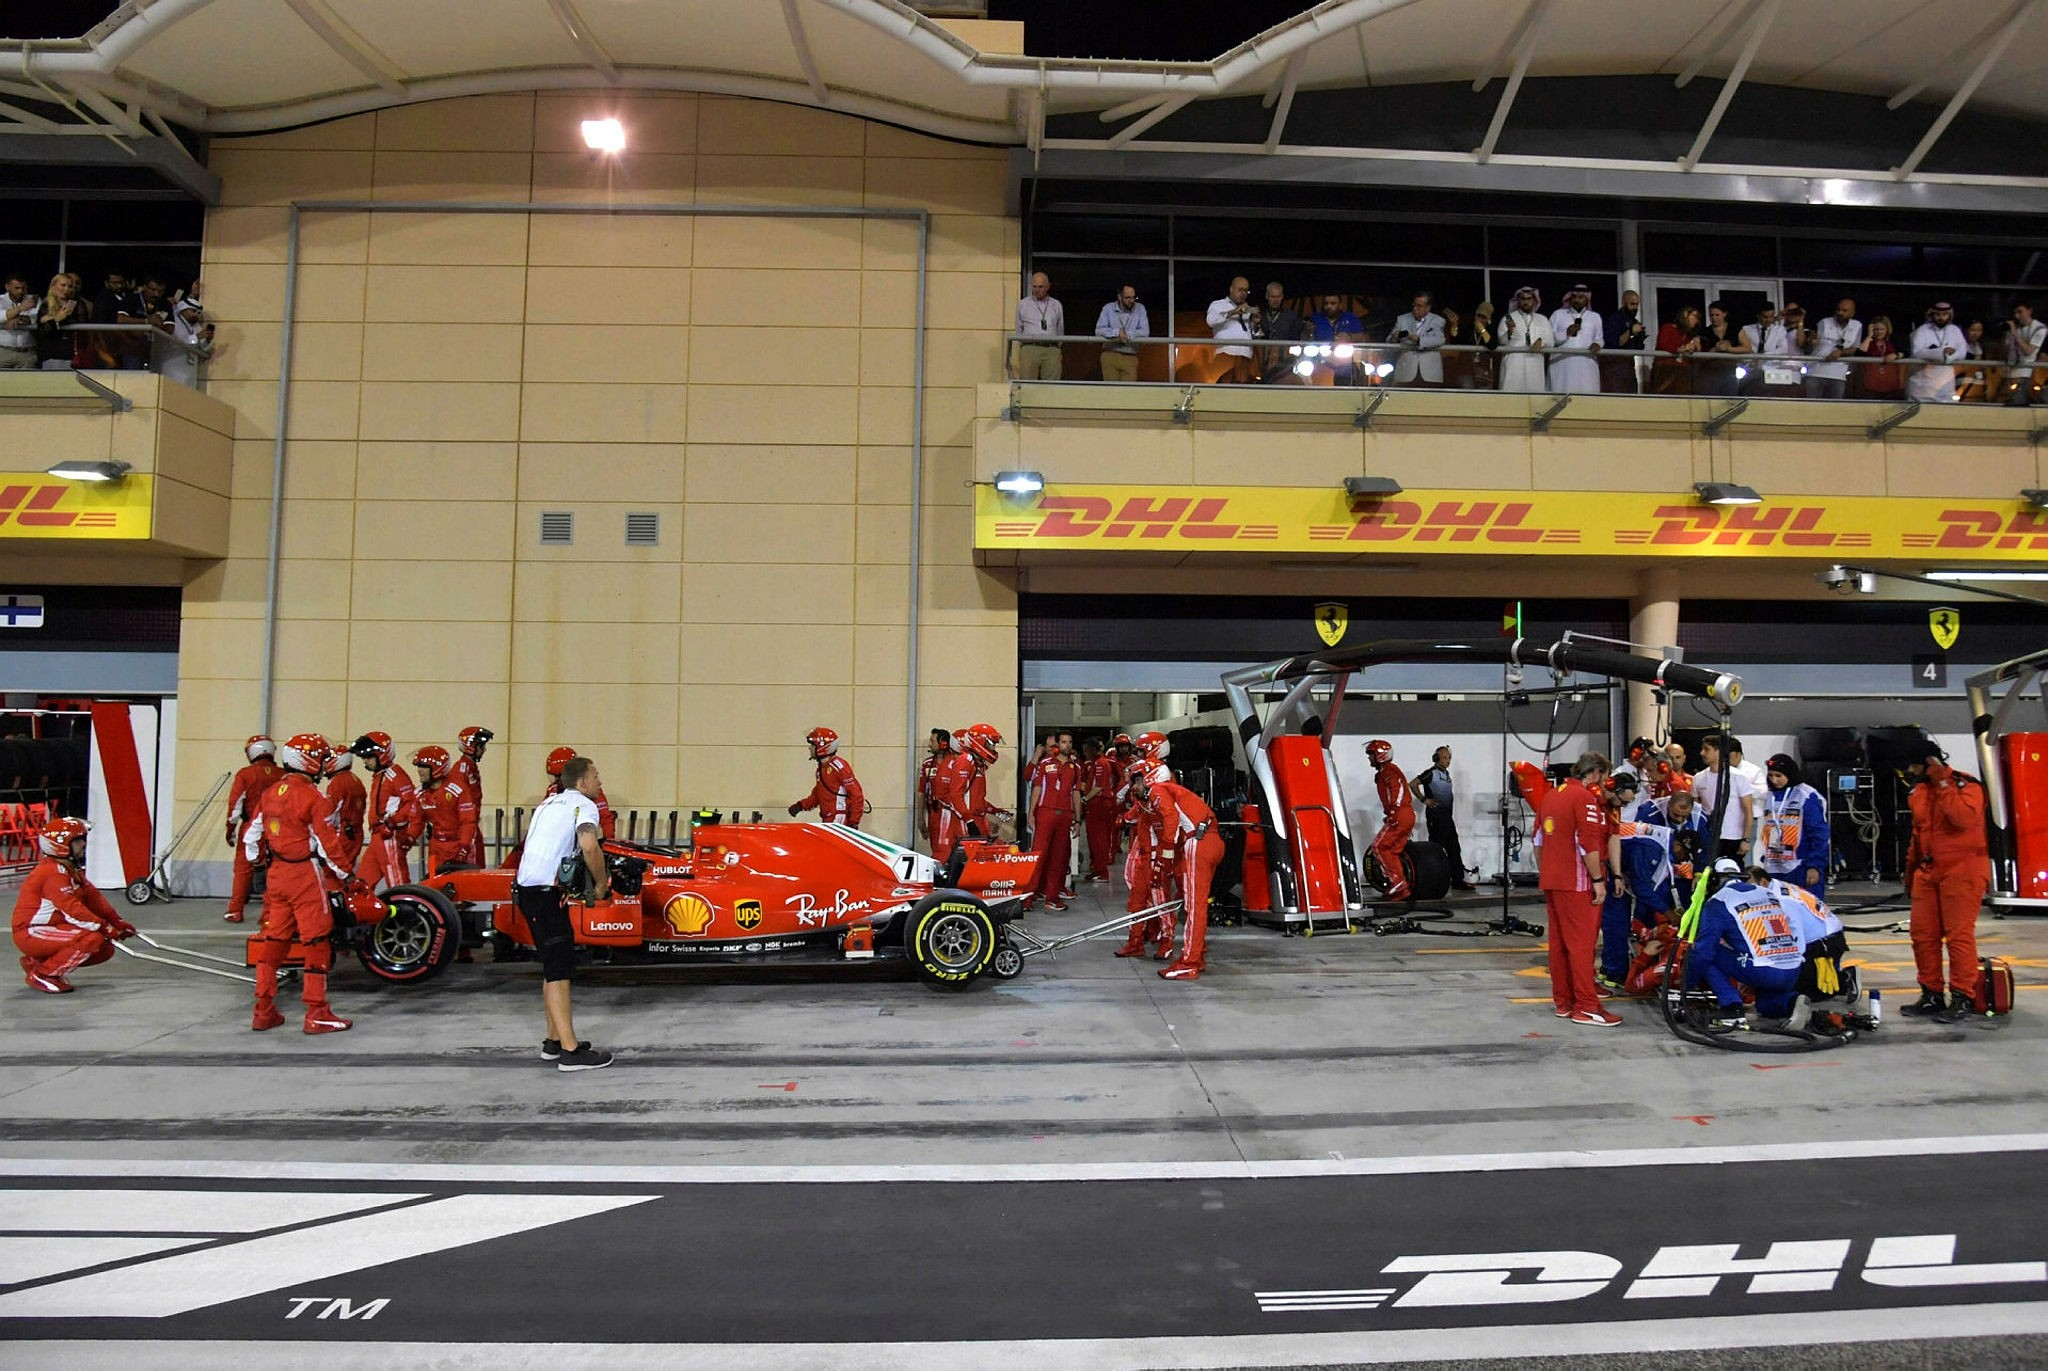 Ferrari team mechanic was taken to the hospital for treatment after being struck by Kimi Raikkonen's car during a botched tire change during the Bahrain Grand Prix on Sunday. (AFP Photo)